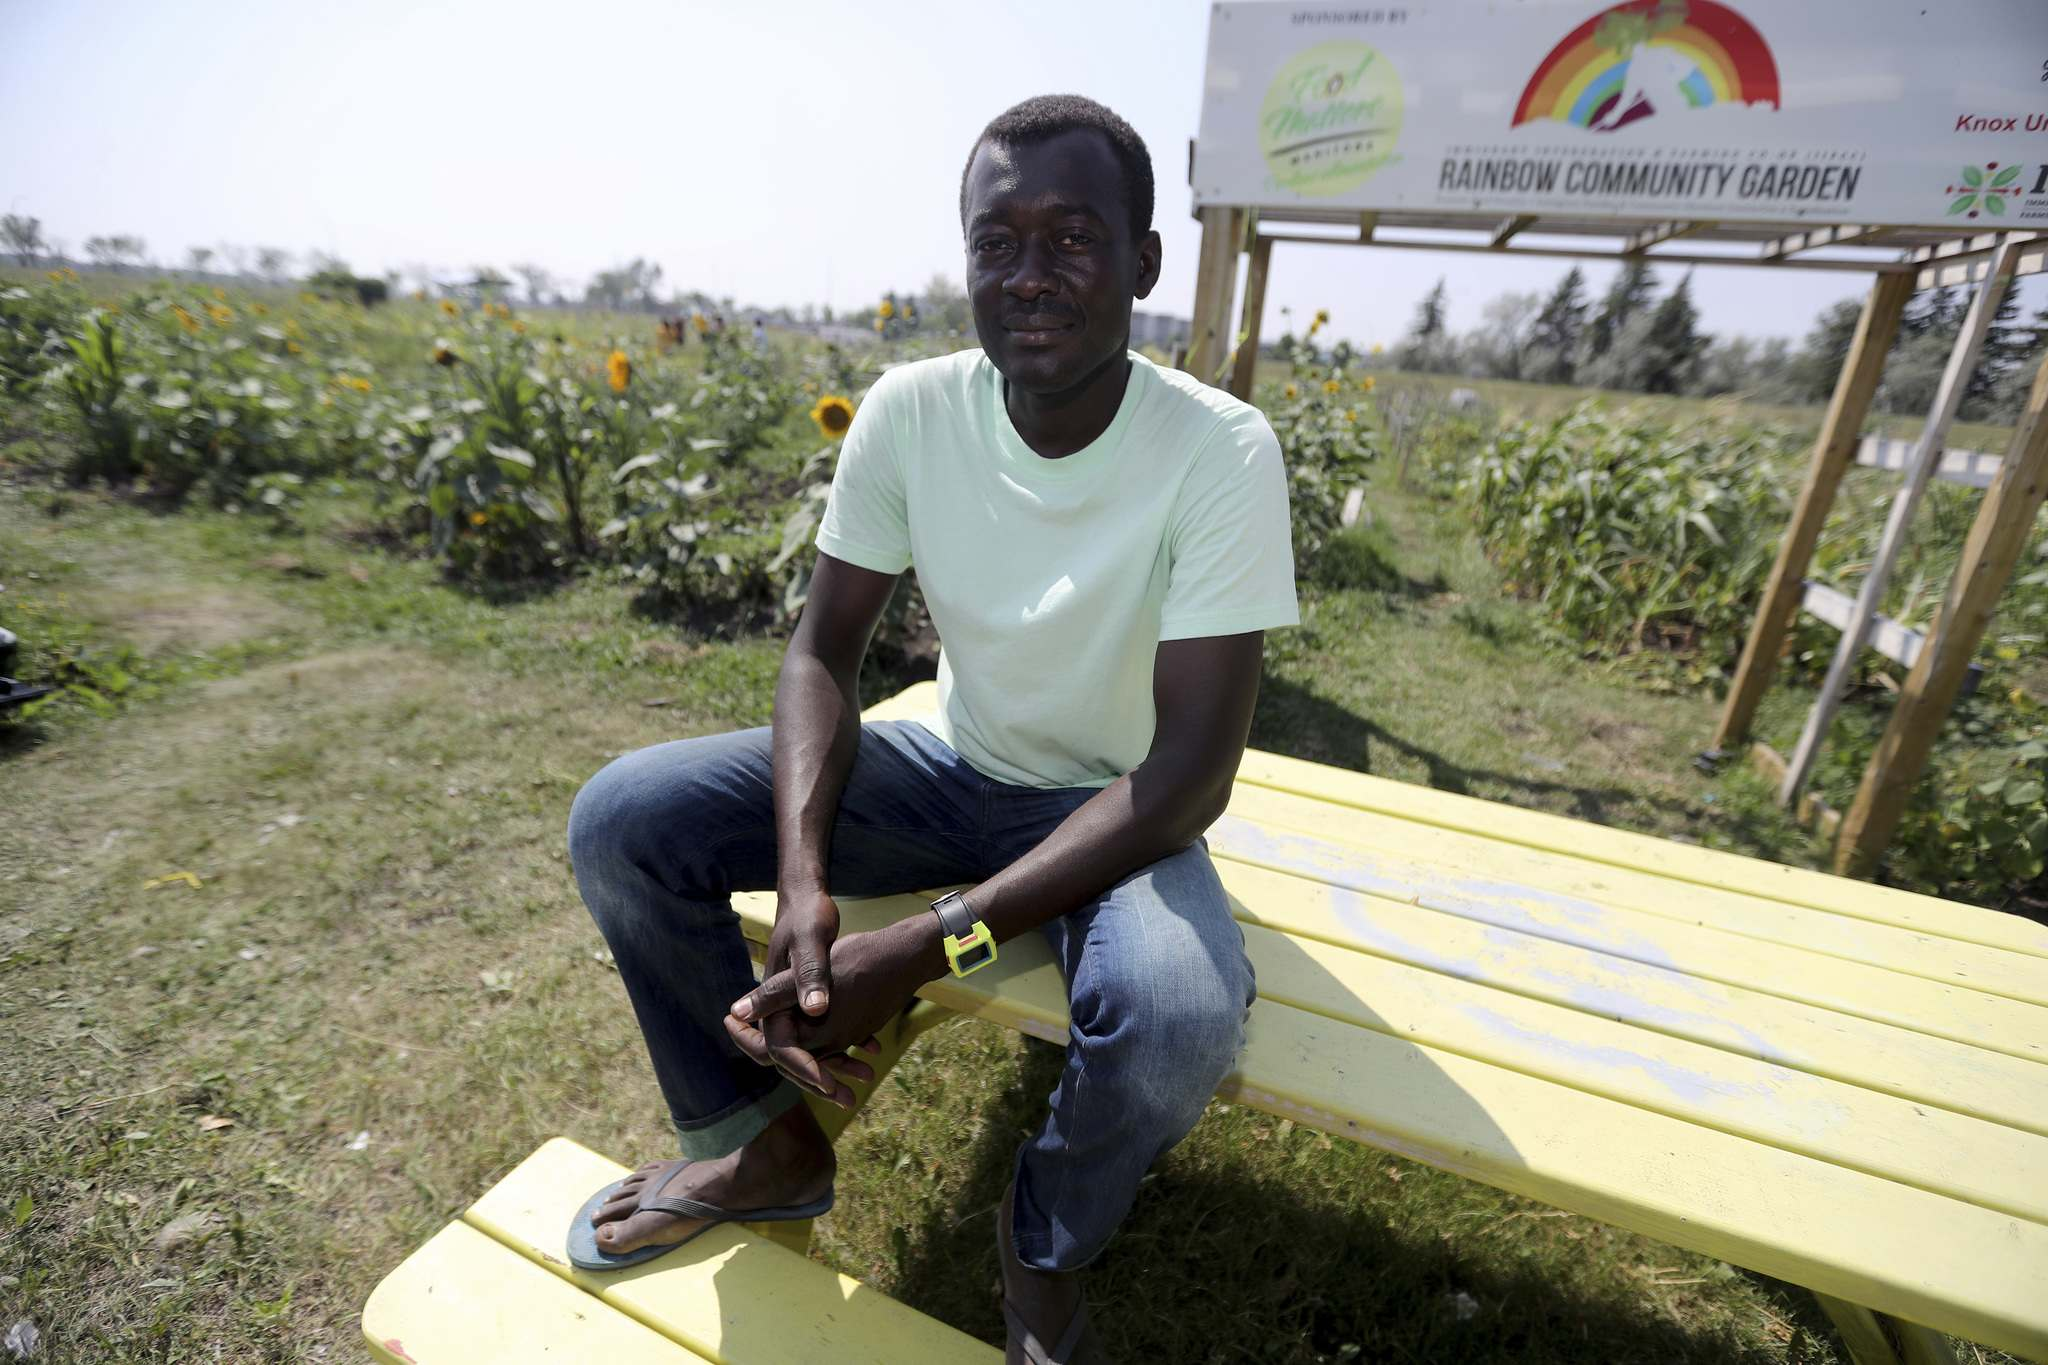 TREVOR HAGAN / WINNIPEG FREE PRESS</p><p>The idea behind the garden, says co-ordinator Raymond Ngarboui, was to 'grow local vegetables, but also vegetables from tropical areas.'</p>